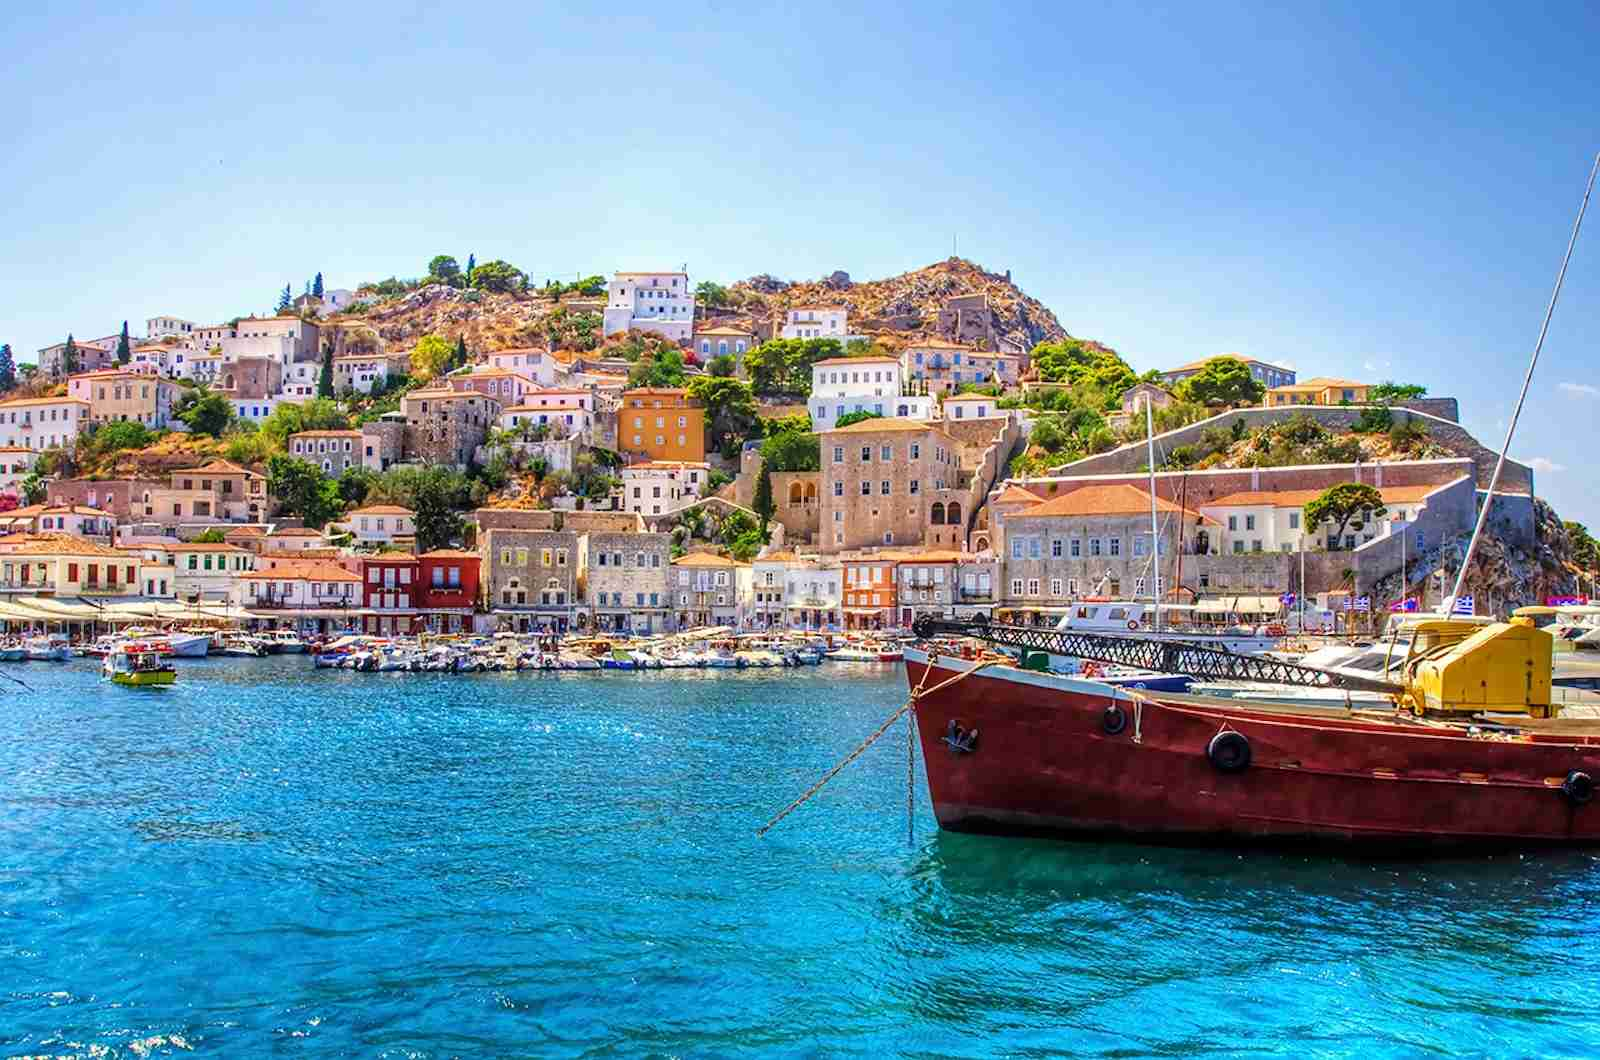 (Hydra, Greece. Photo by f8grapher/Getty Images)